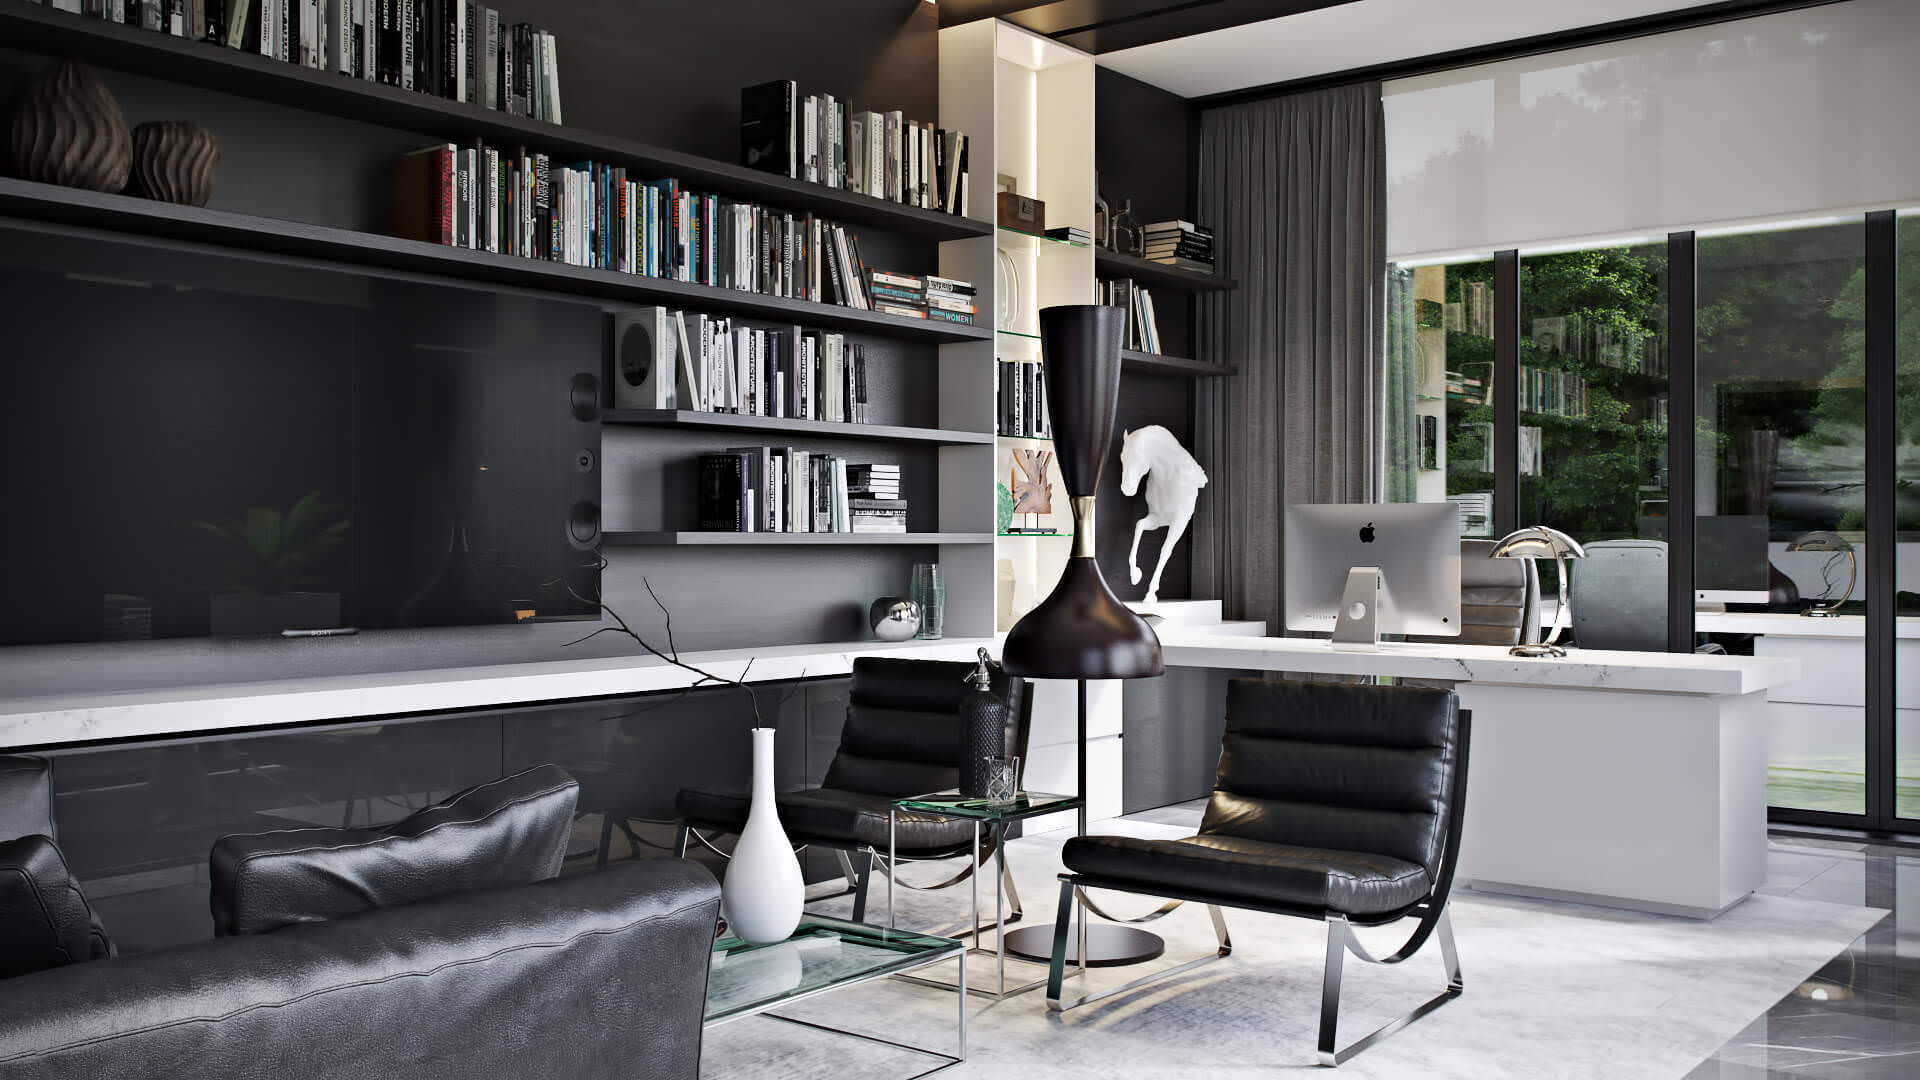 Professional Photoreal Rendering: Classy Home Office Design In Black View02